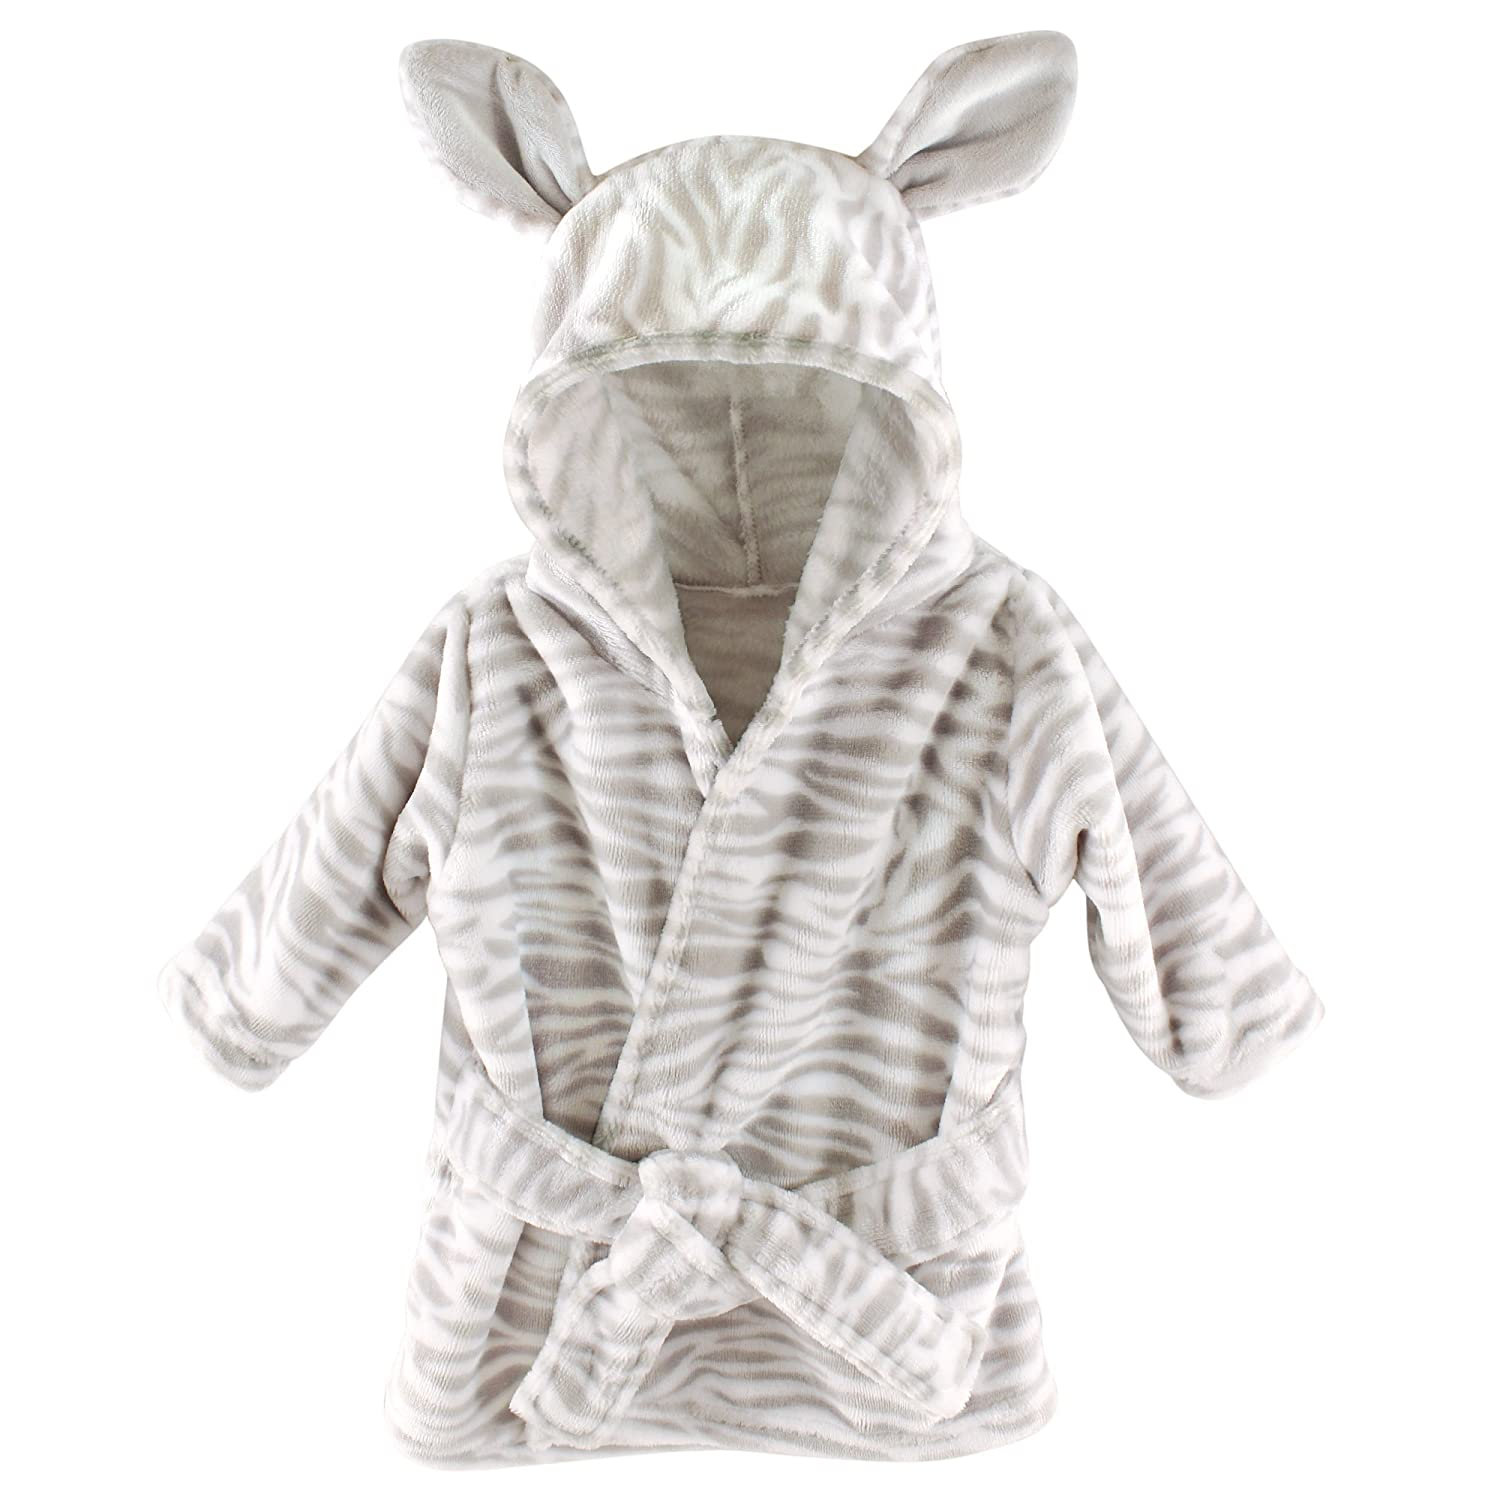 Hudson Baby Animal Plush Bathrobe, Giraffe 57069_Giraffe